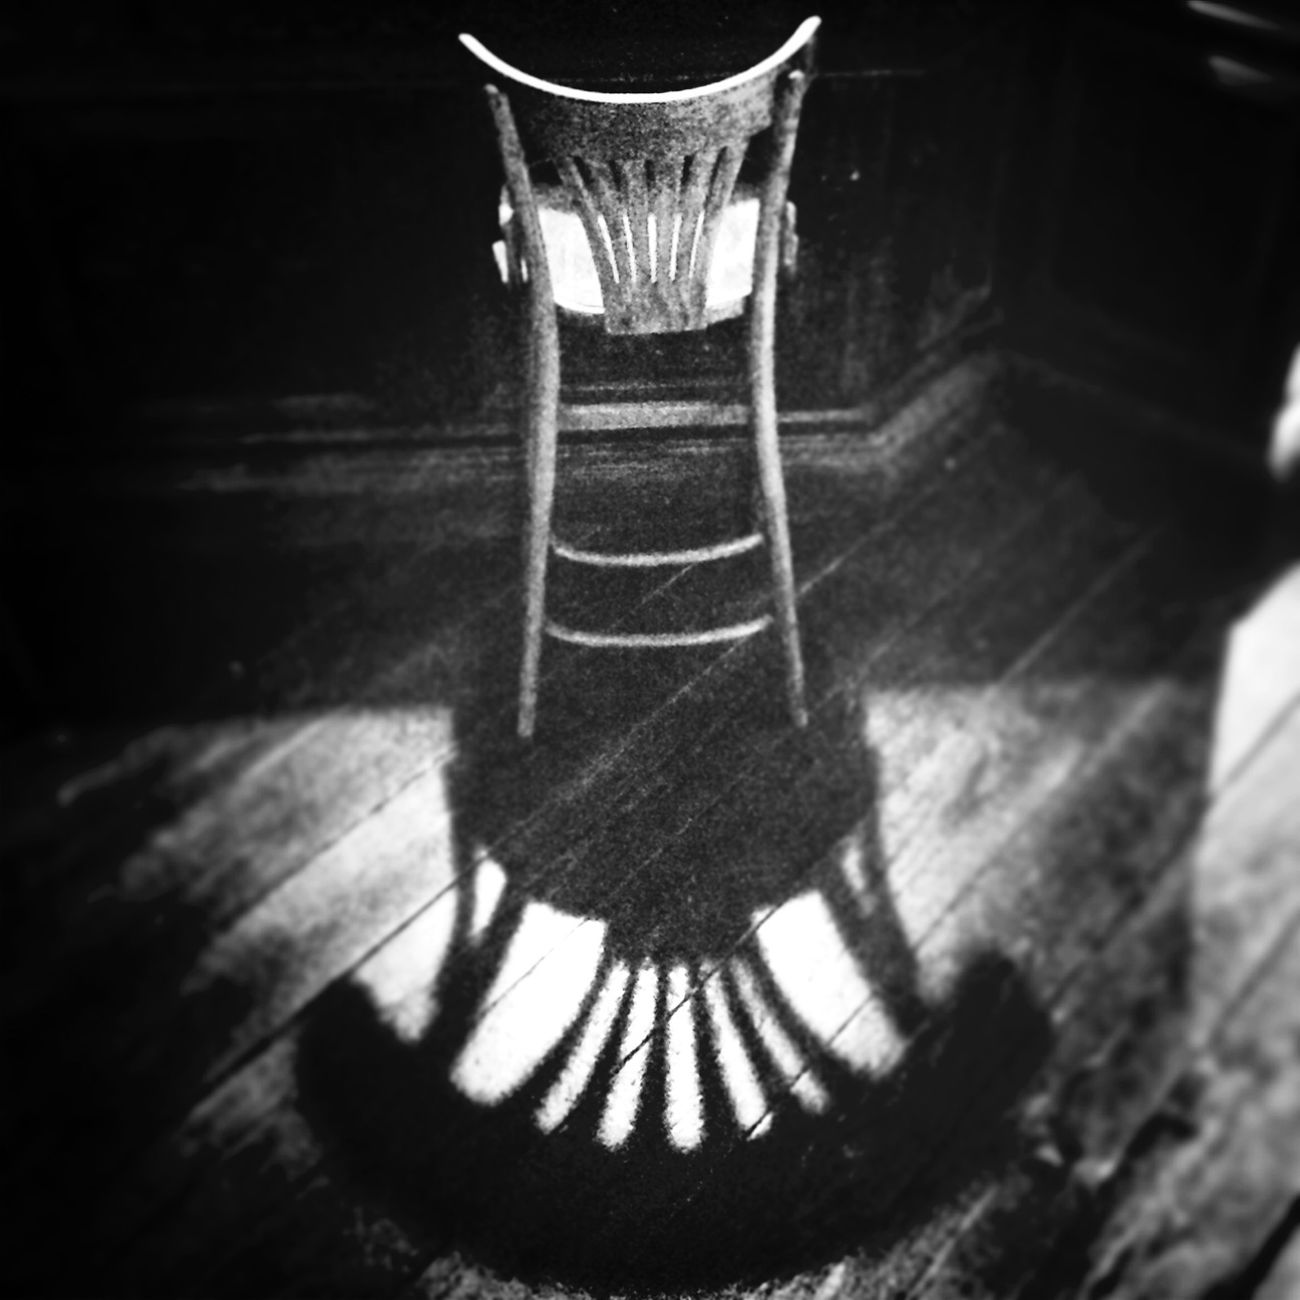 IPhoneography KCe Mas De 100 Me Gusta/ 100 I Like Most Change your Change Your Perspective